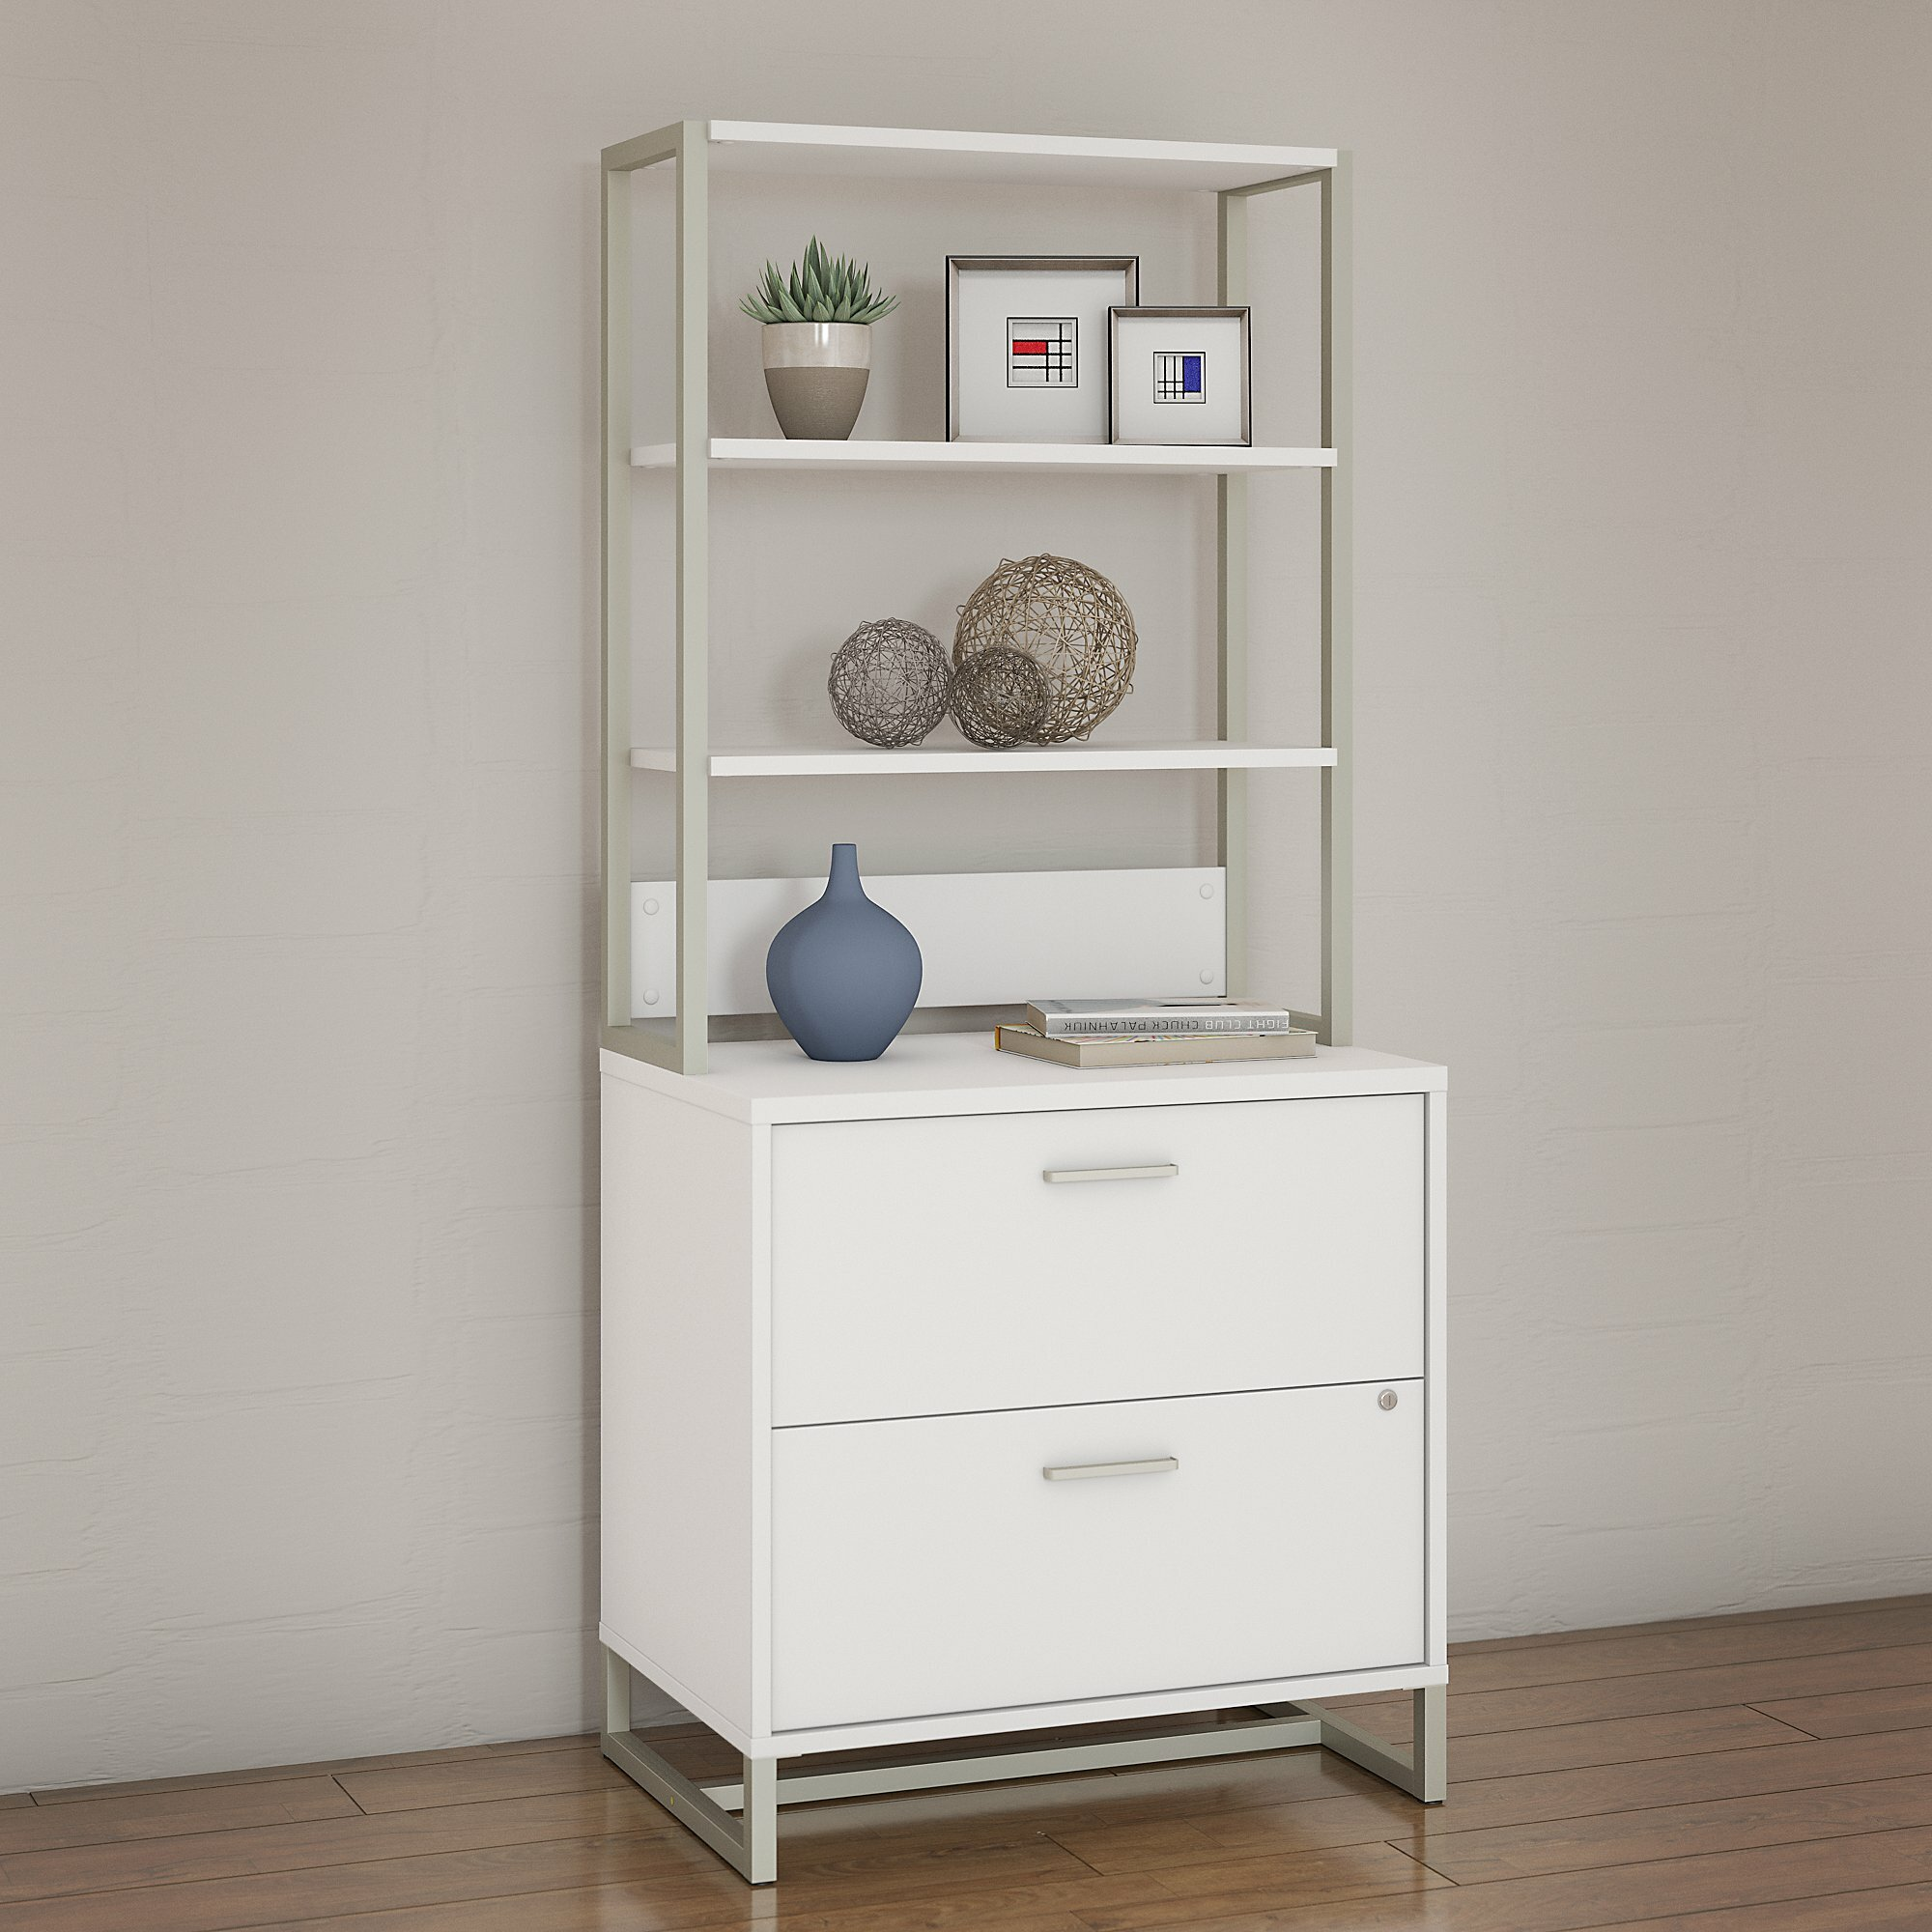 kathy ireland officebush method 2 drawer lateral filing cabinet lateral file cabinet with shelves